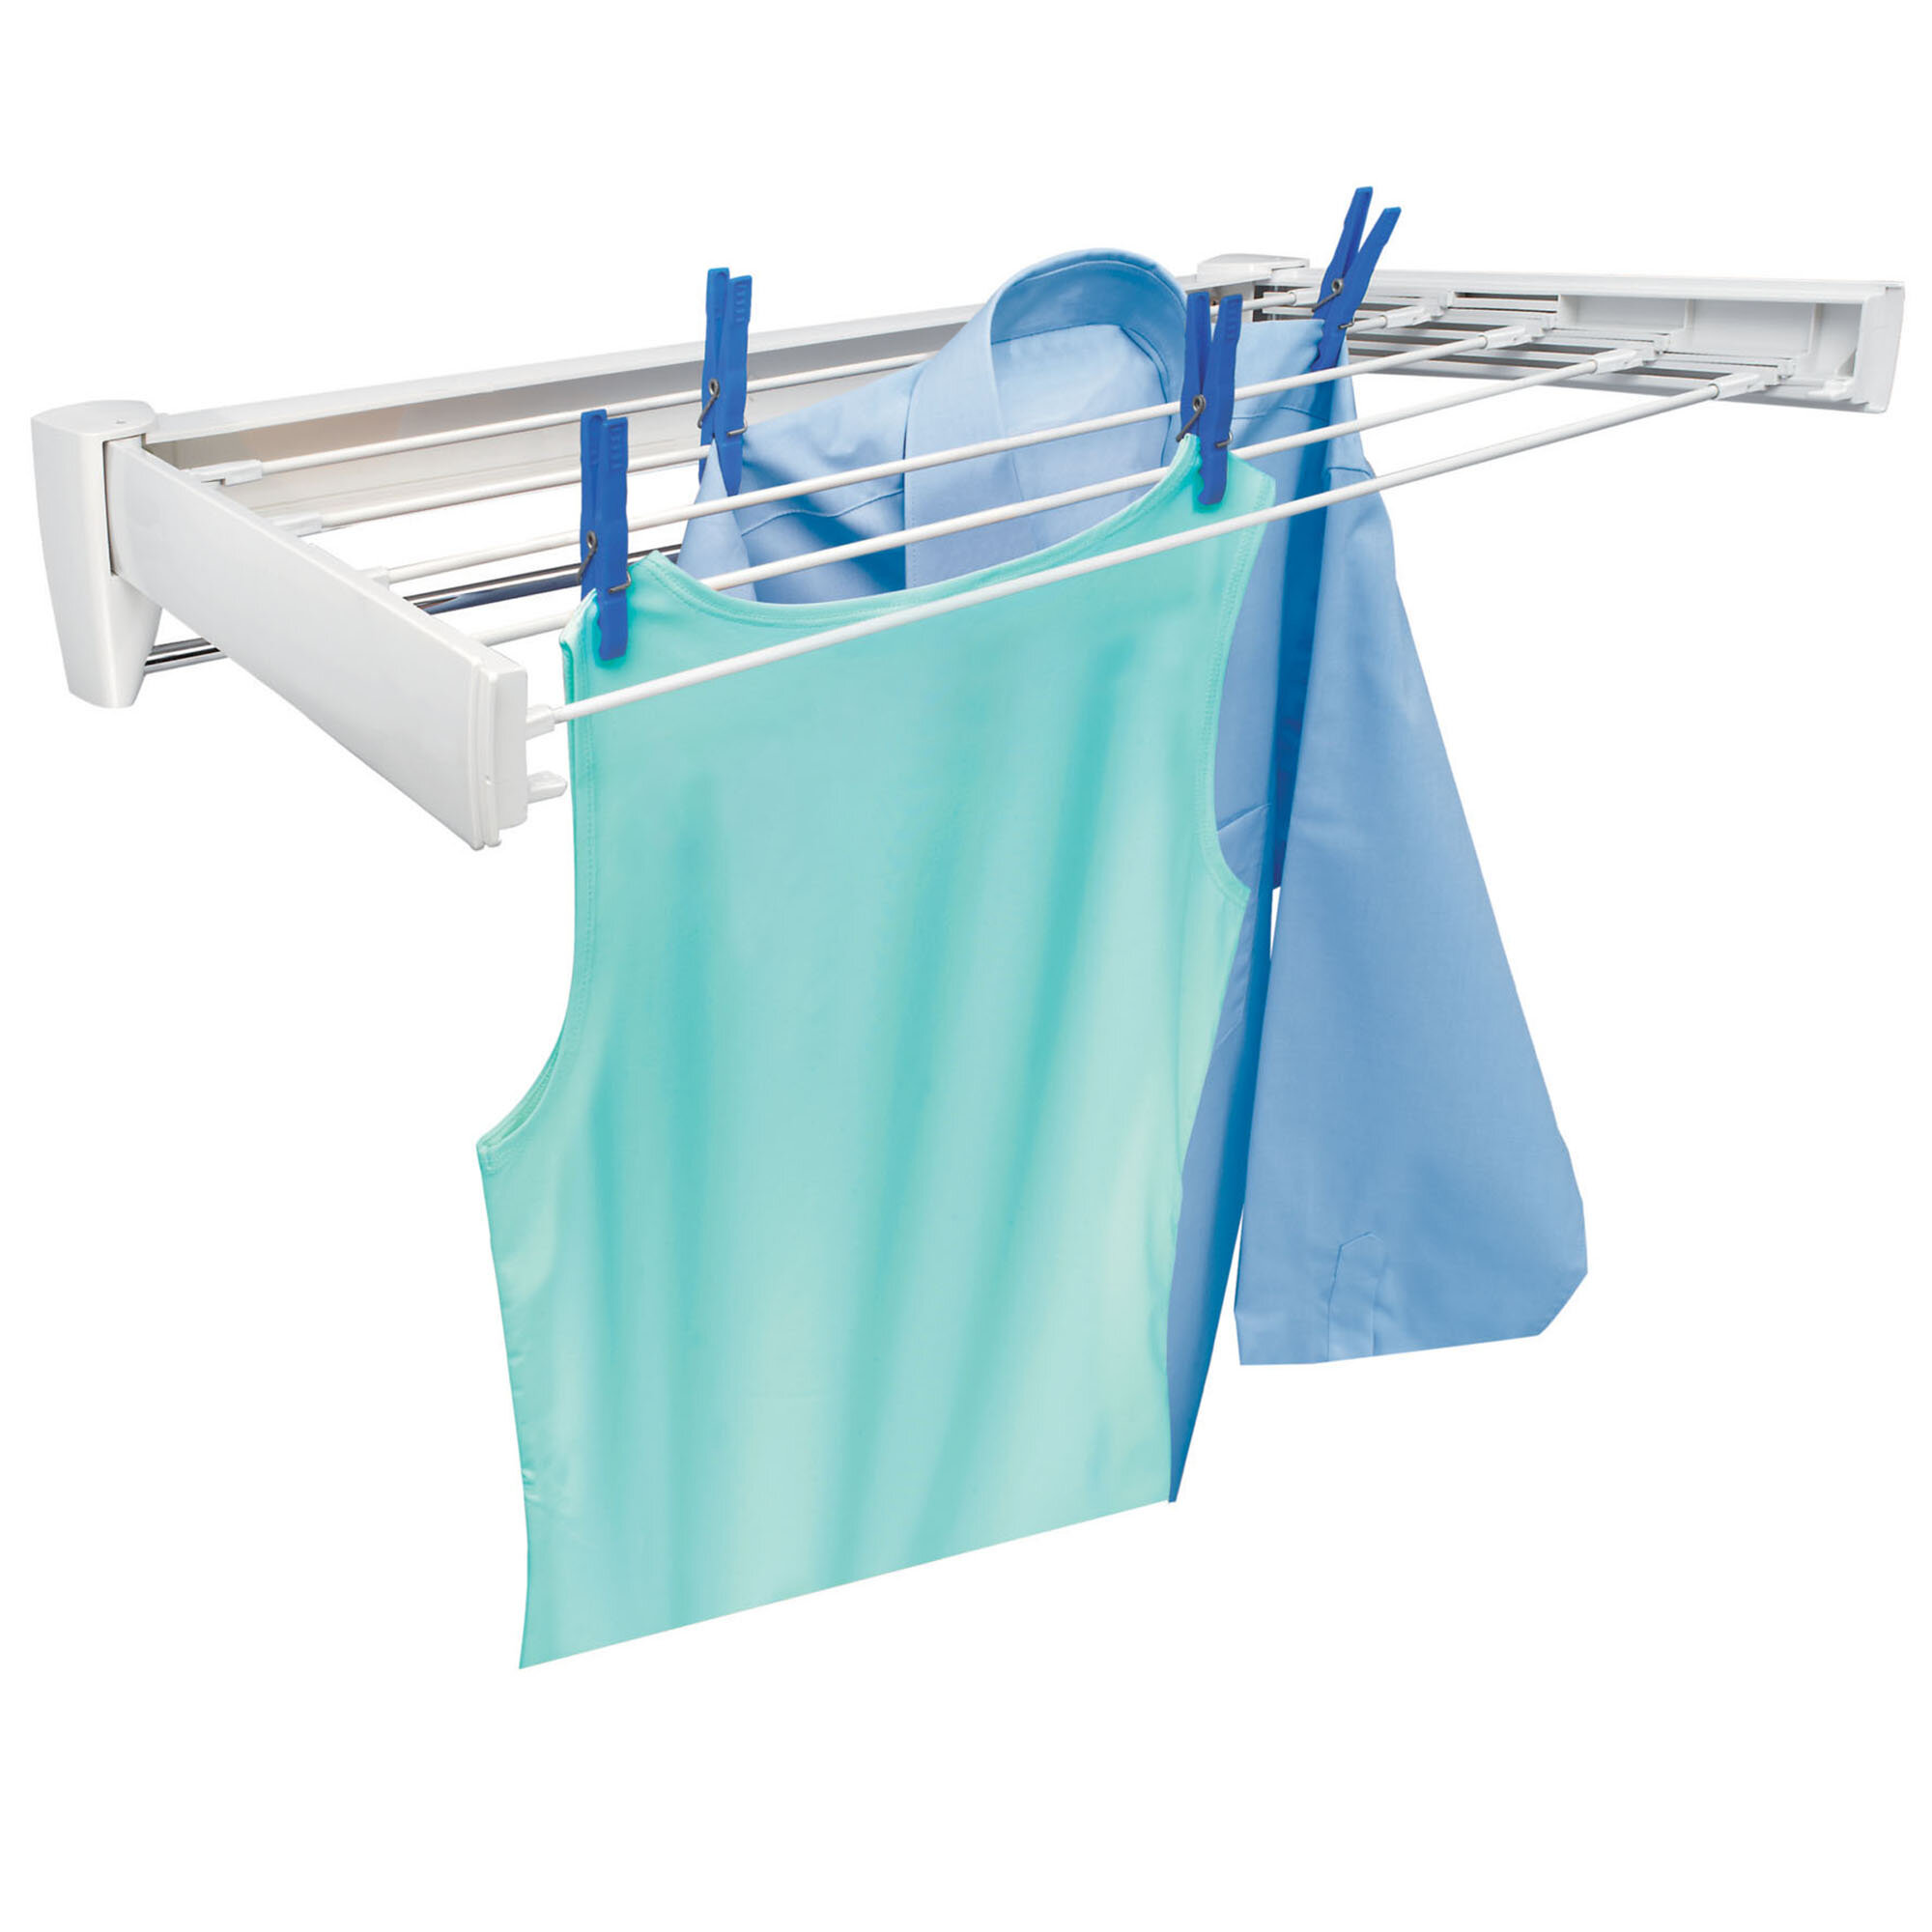 space every solutions a offers living drying clothes dryer hills racks rack for